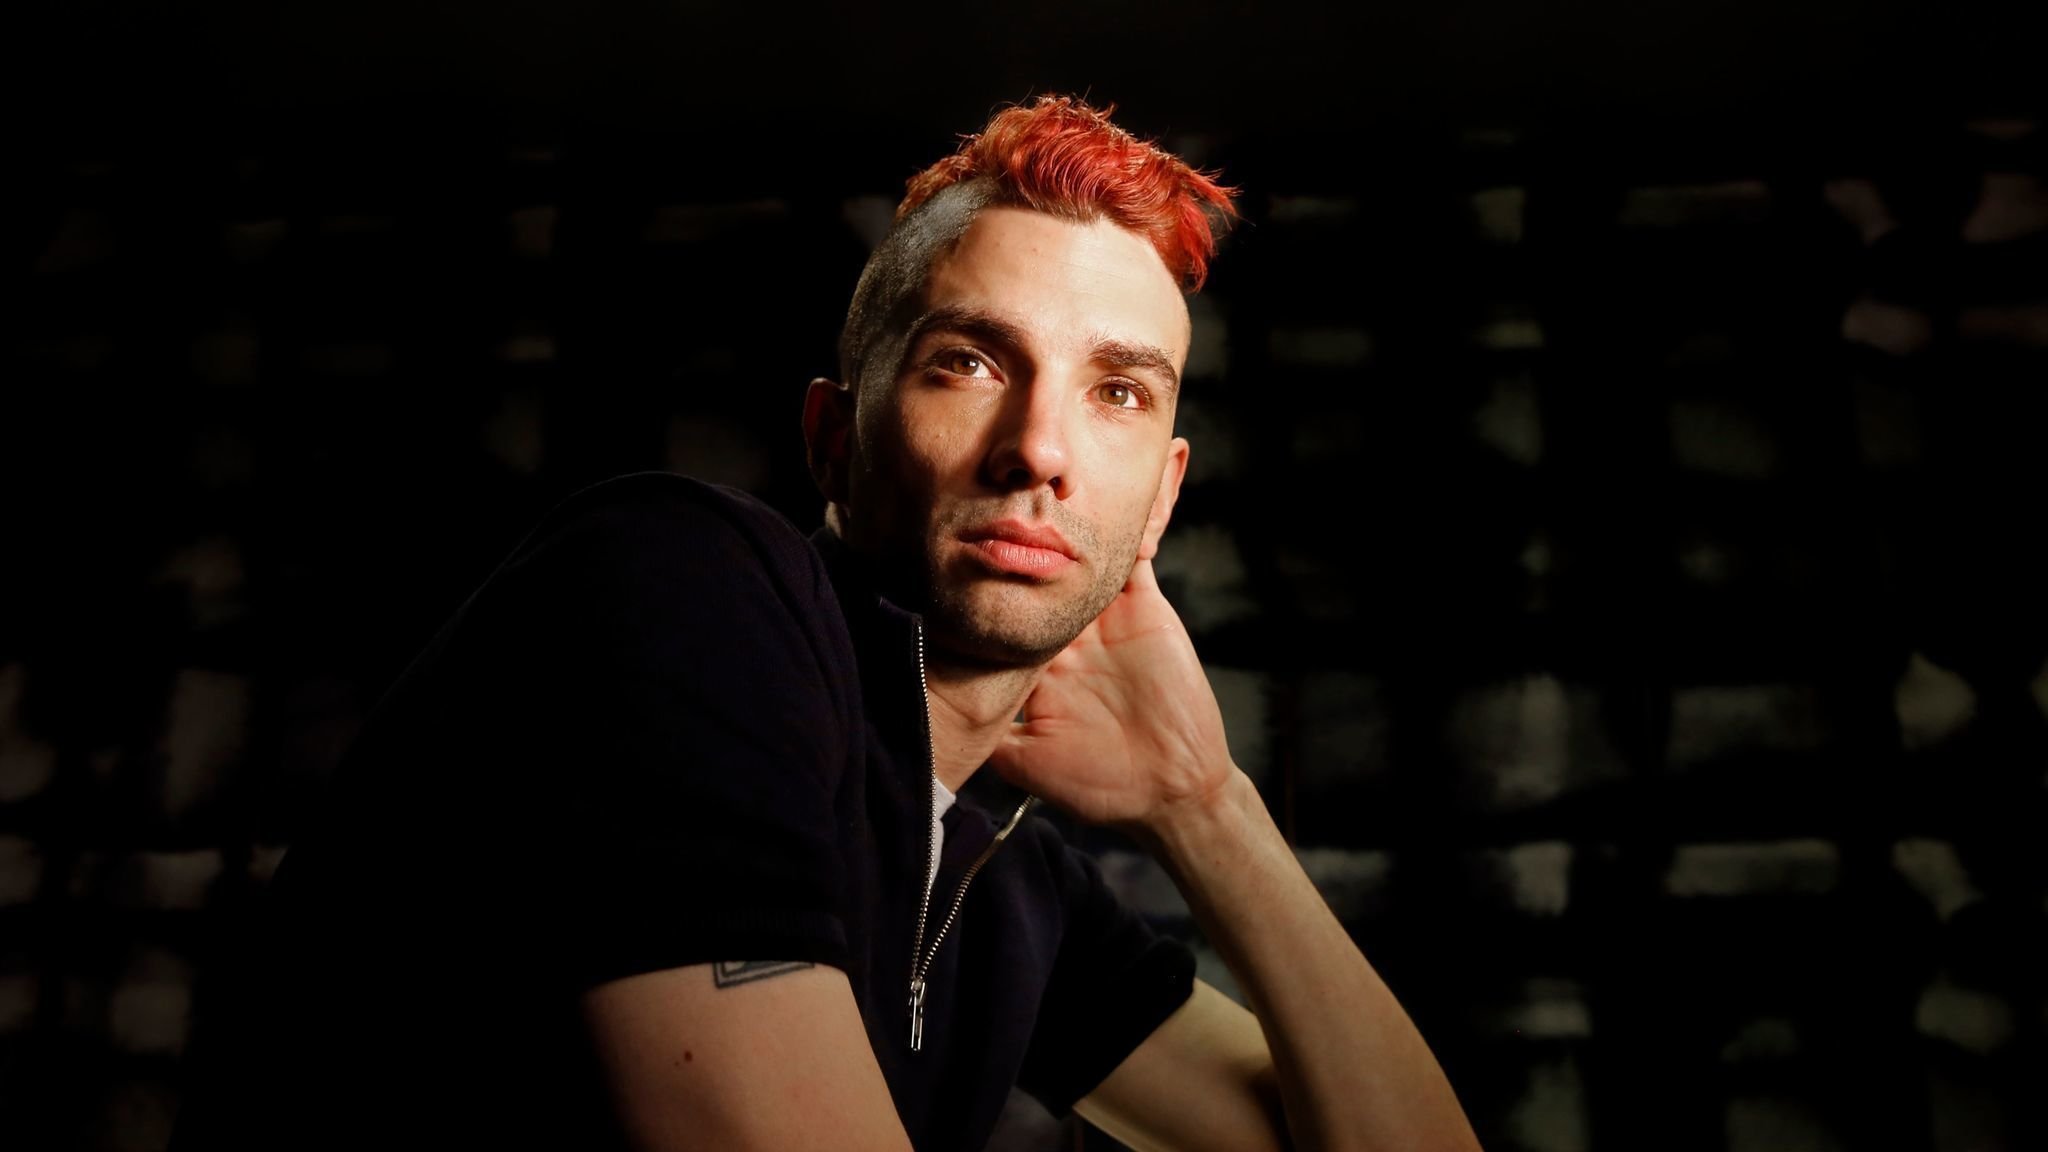 jay baruchel moves behind the camera with bloodontheice